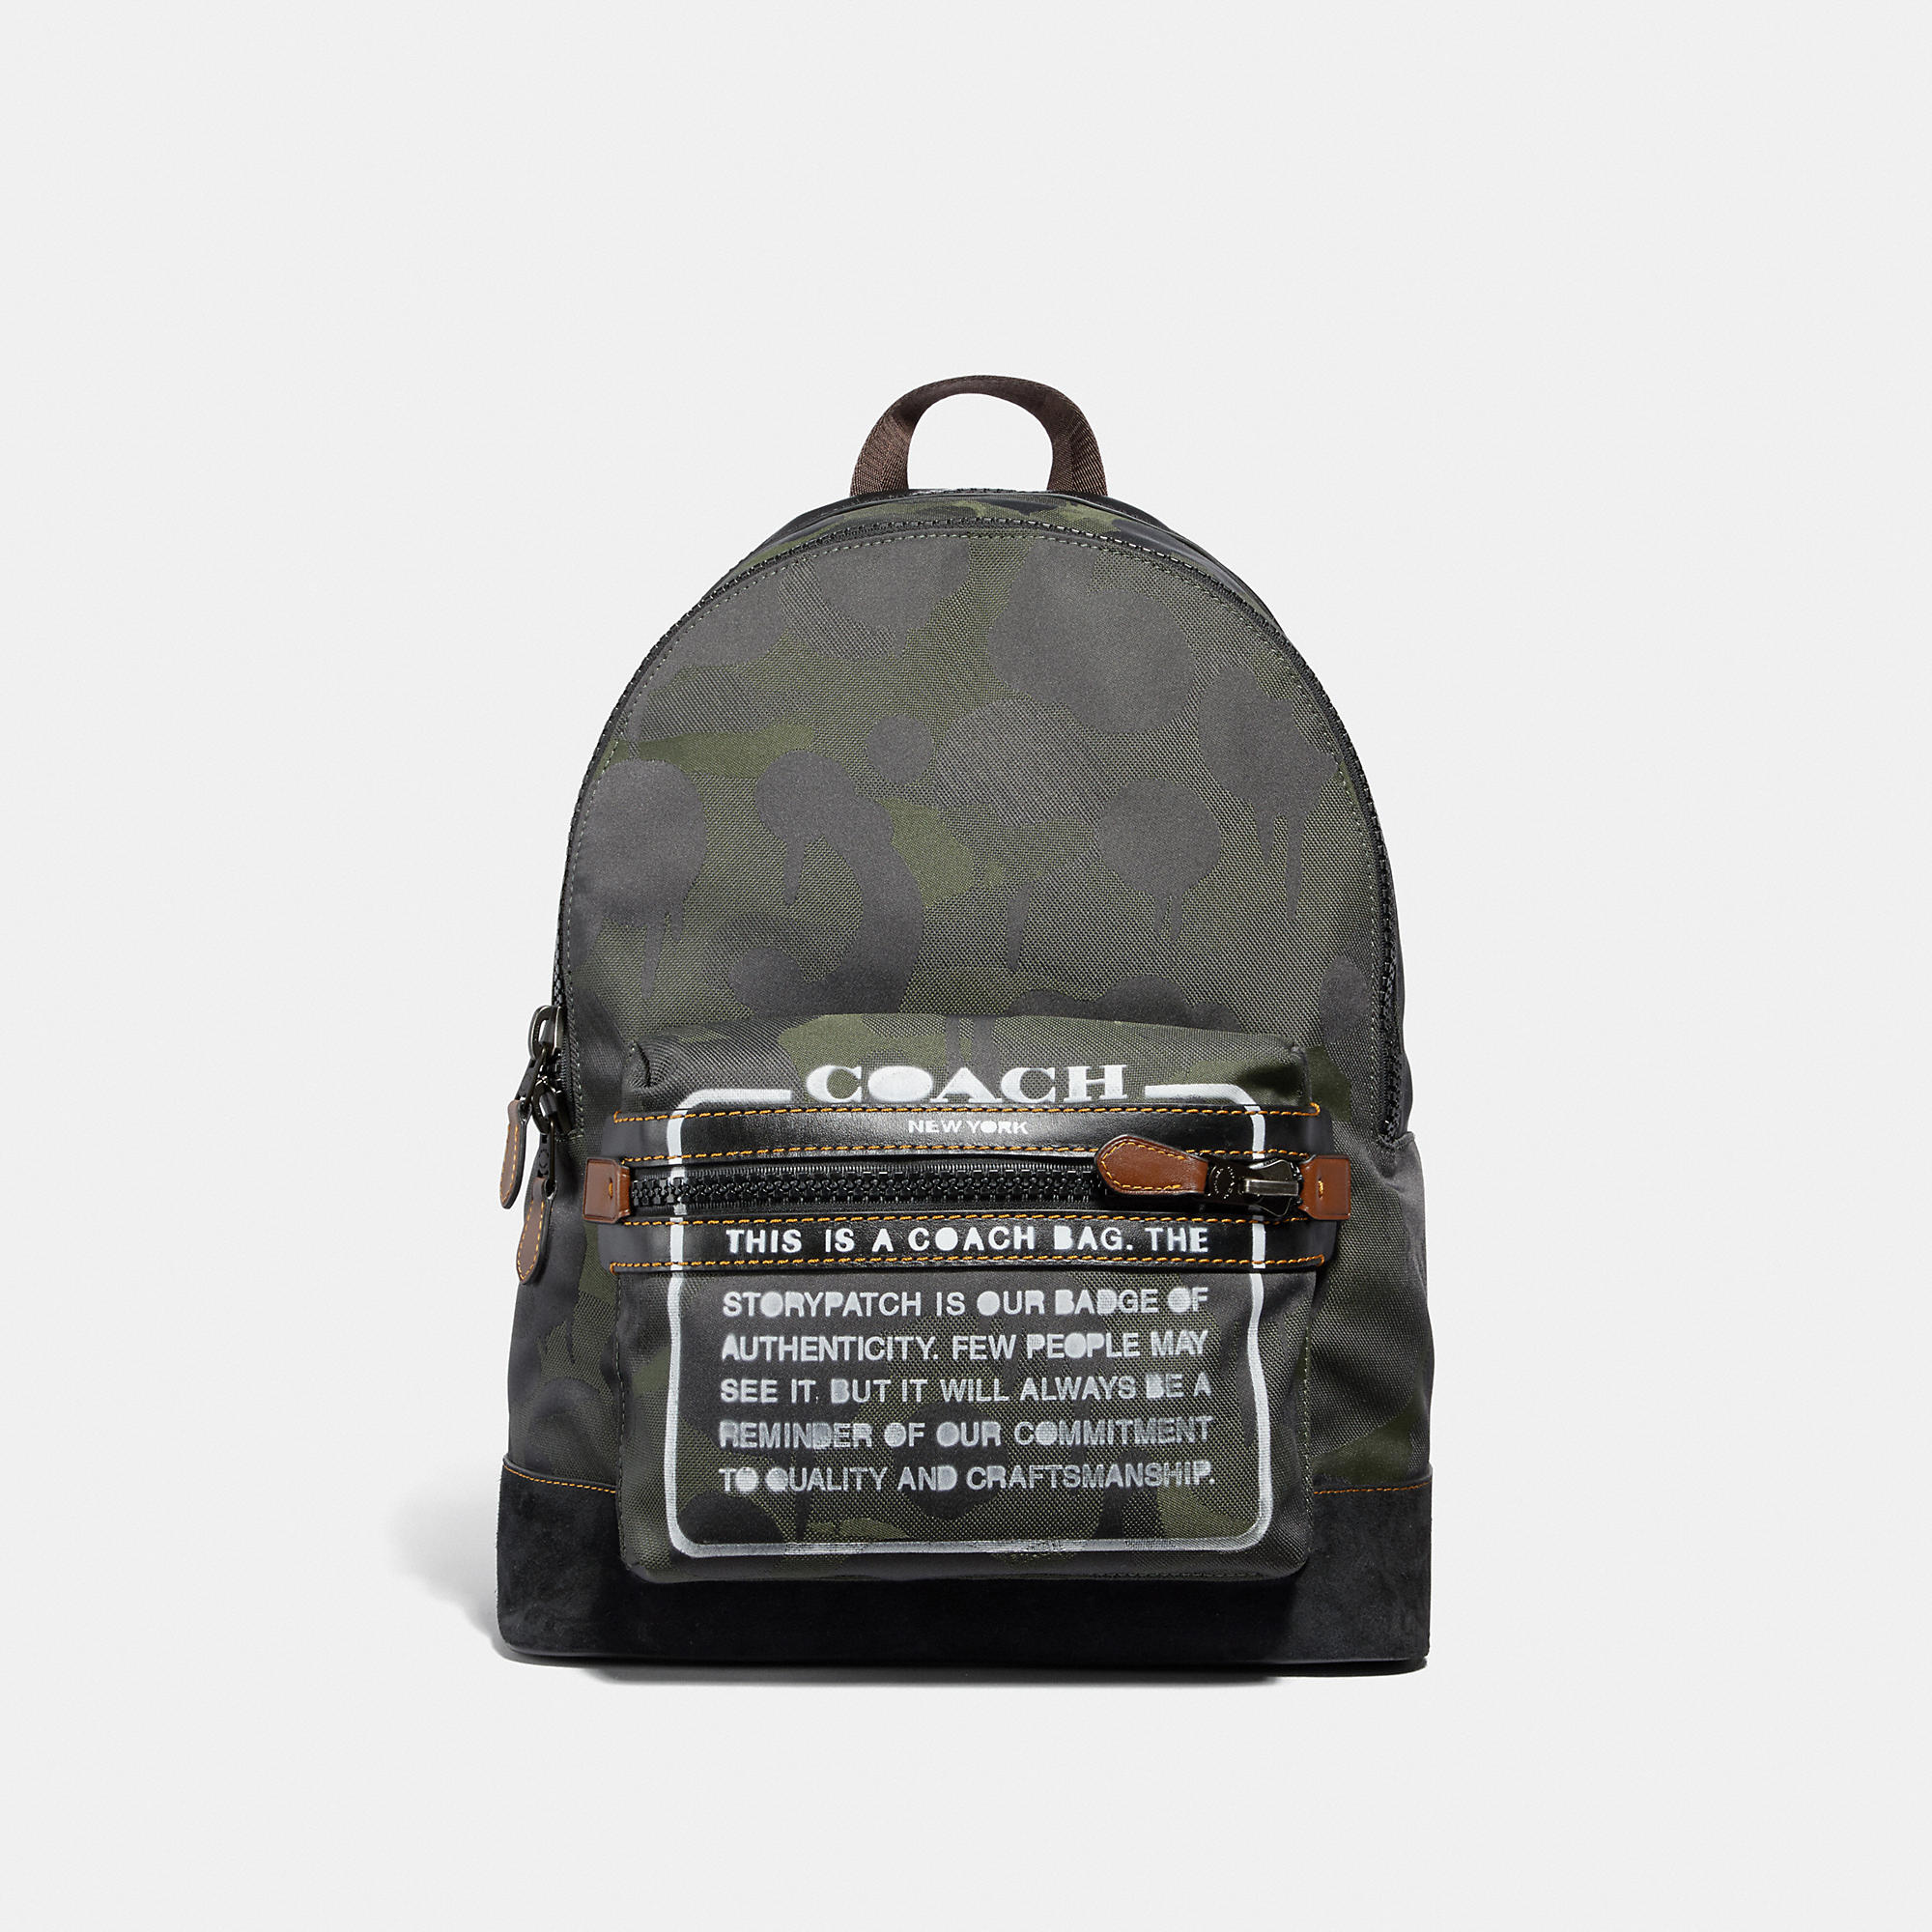 Coach Academy Backpack In Cordura Fabric With Wild Beast Print And Storypatch